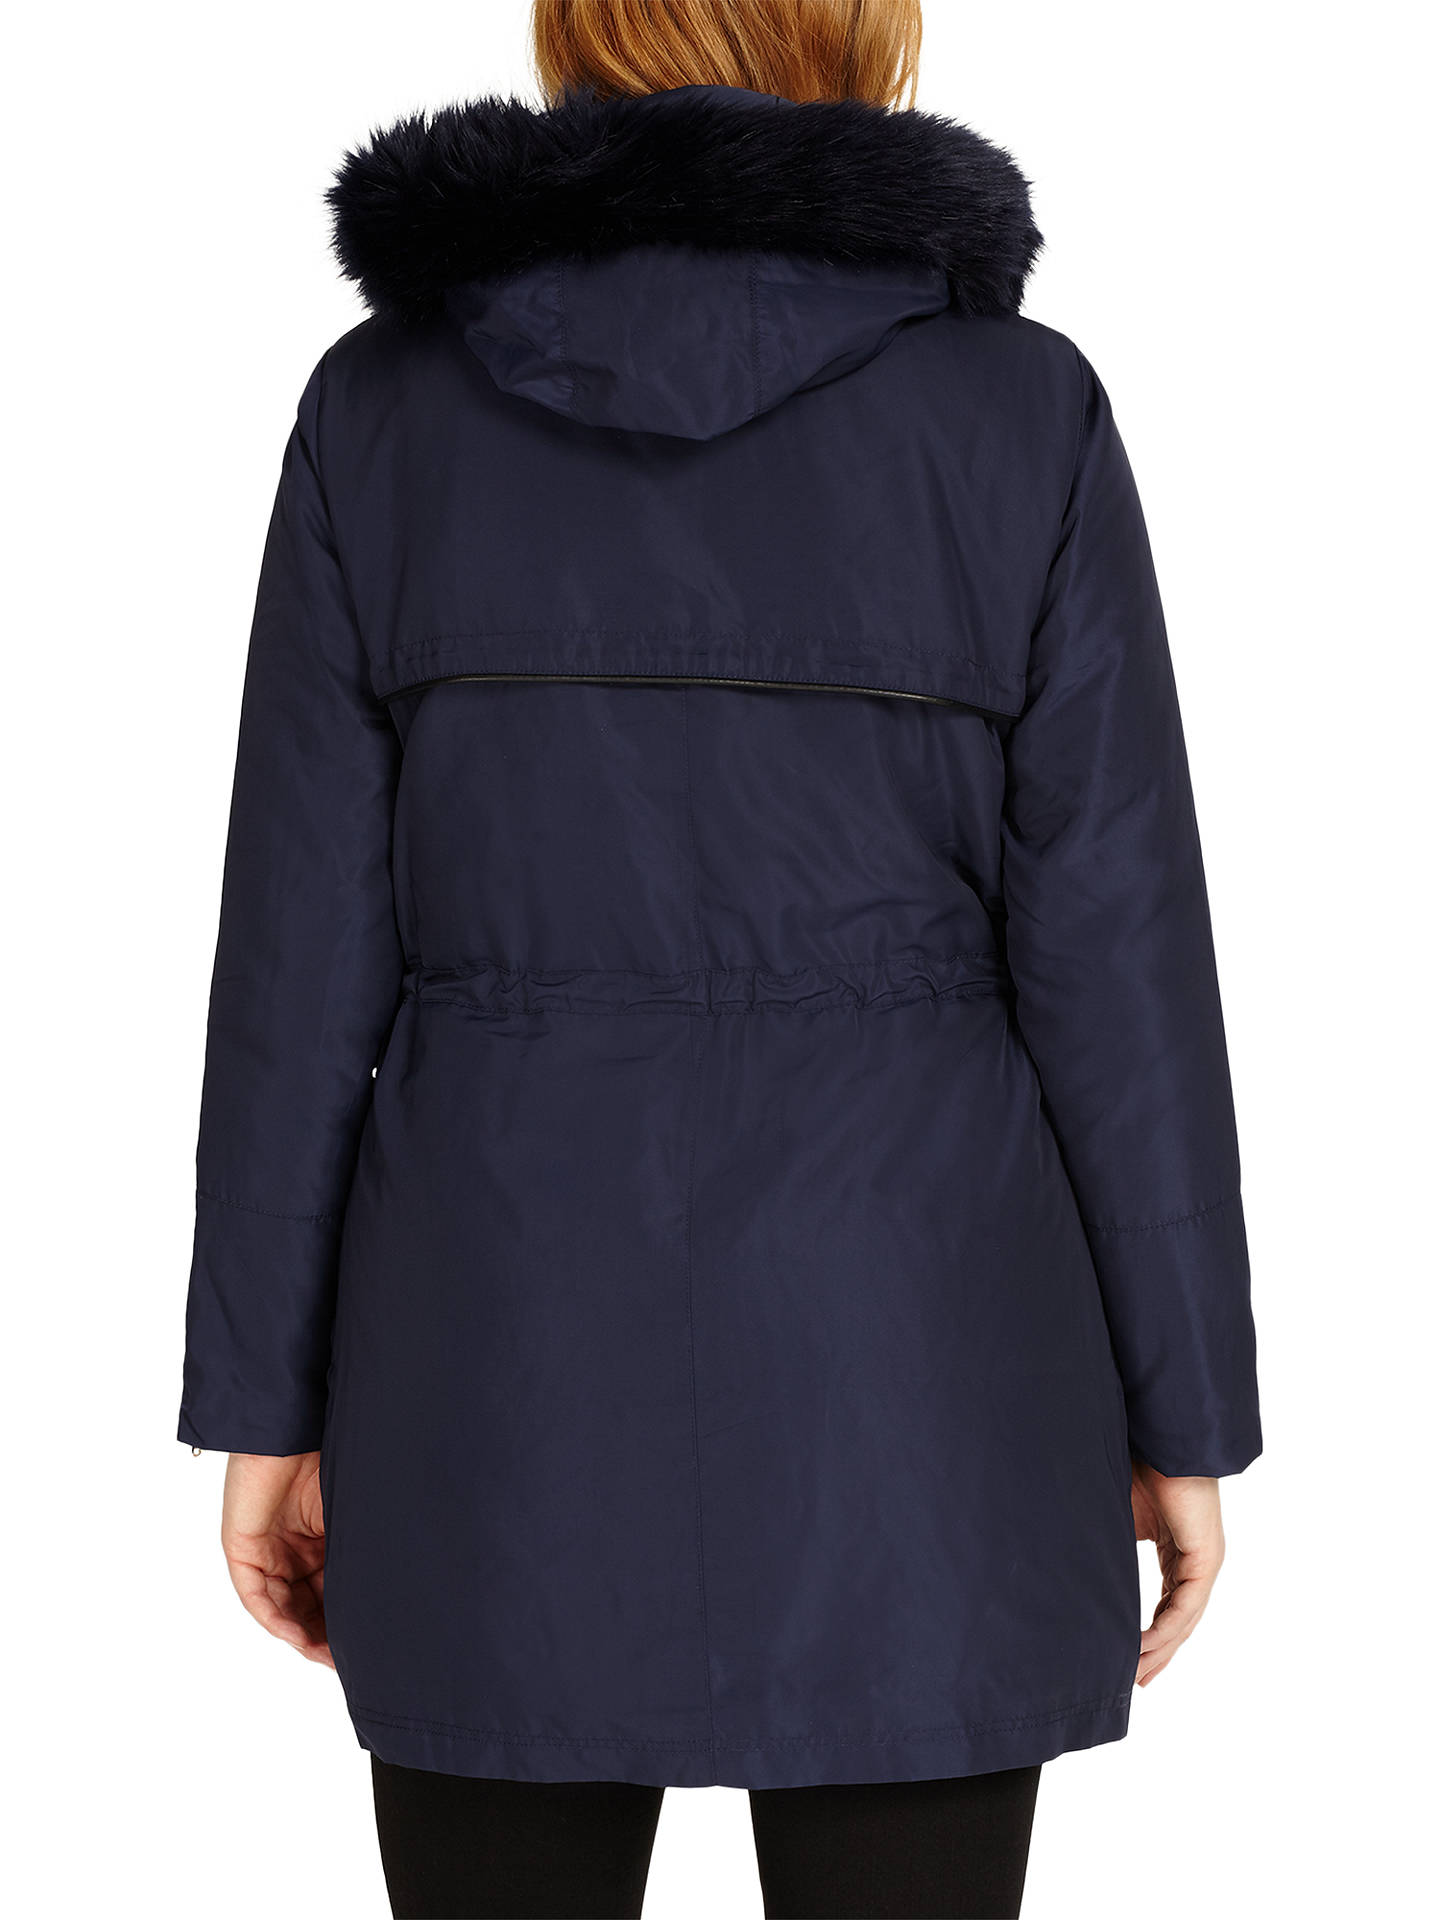 BuyStudio 8 Melanie Parka Coat, Navy, 12 Online at johnlewis.com